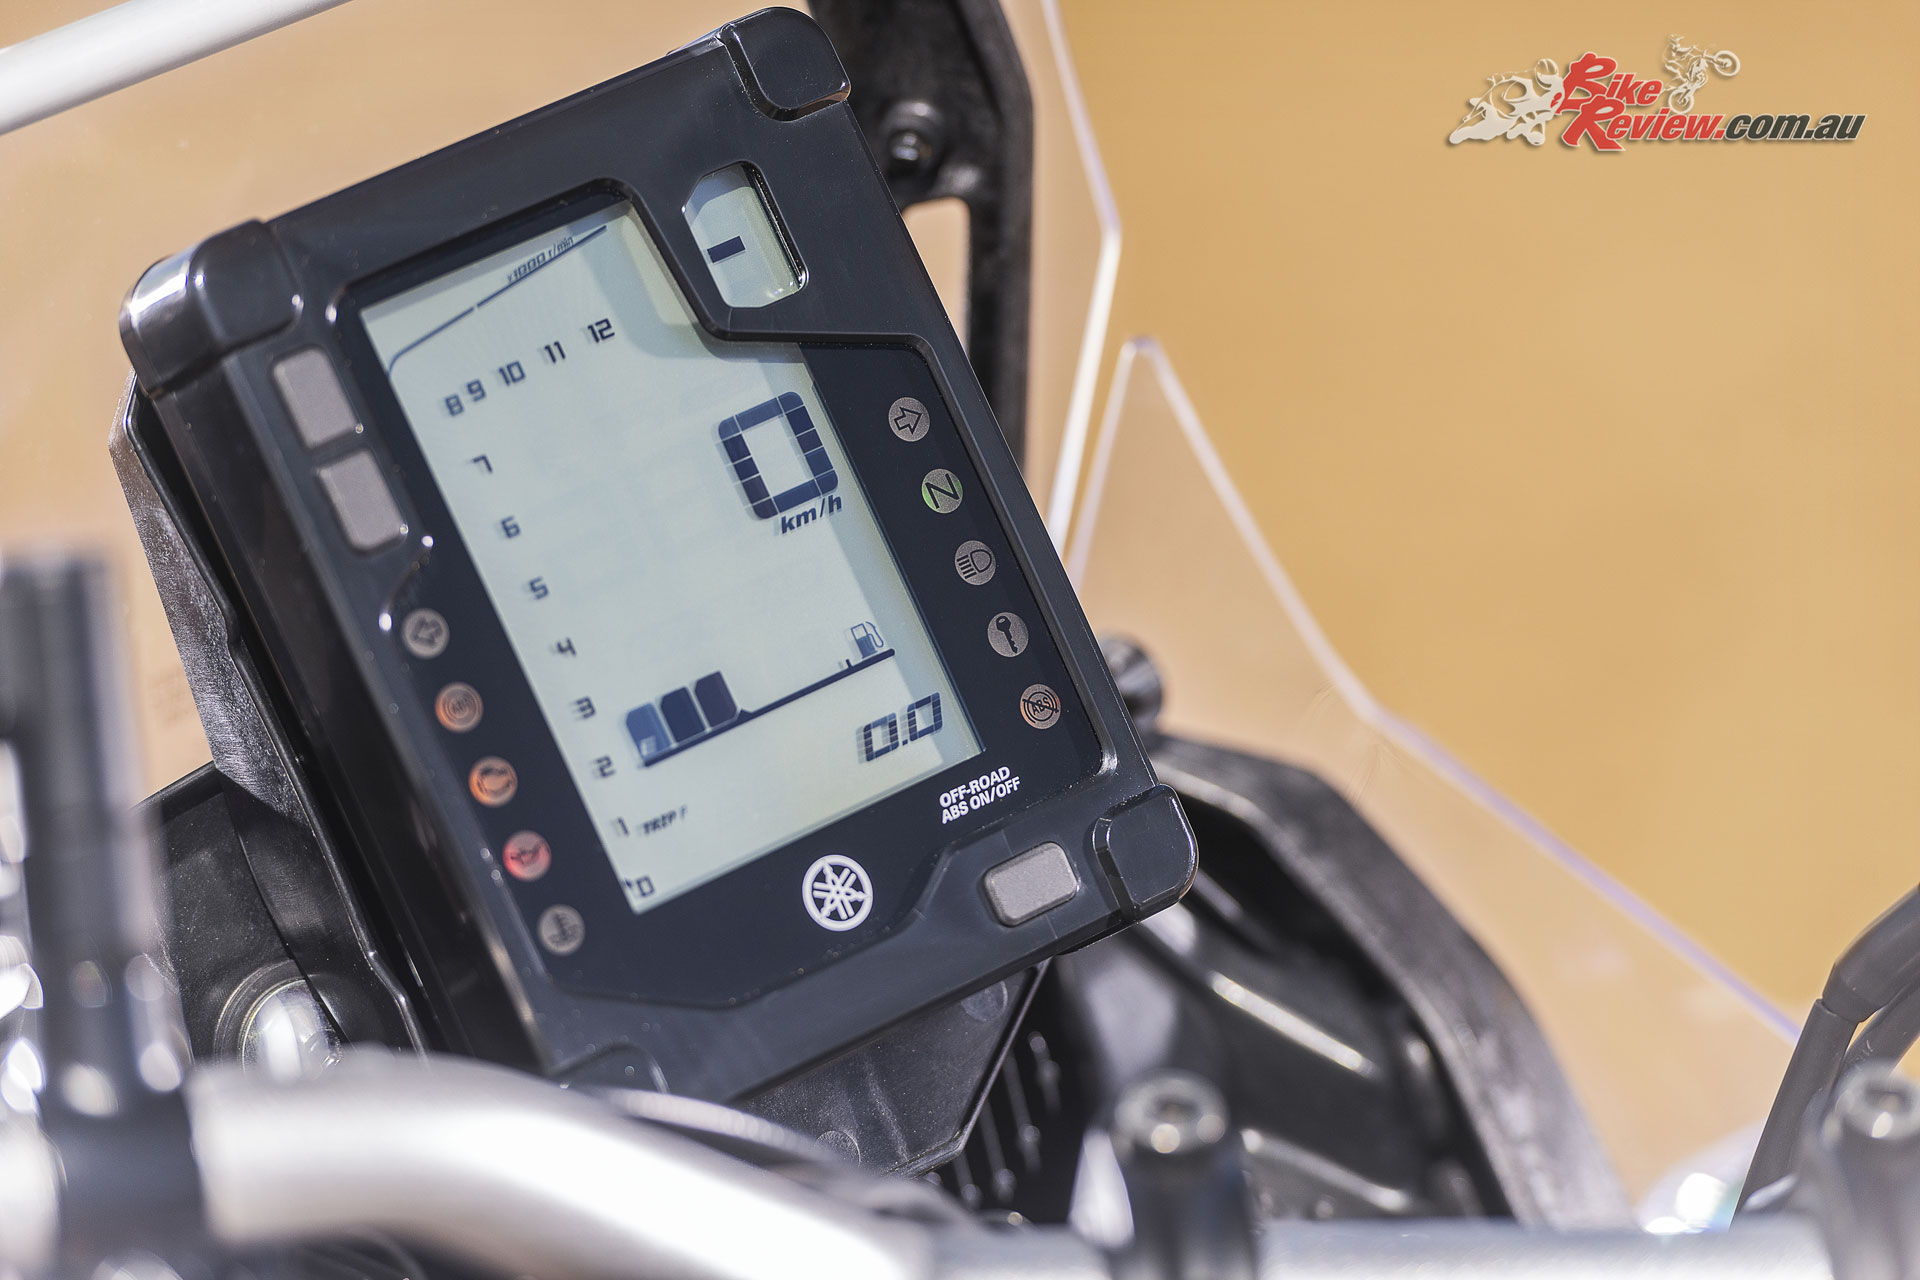 2019 Yamaha Tenere 700 - Rally style instrumentation is easy to read